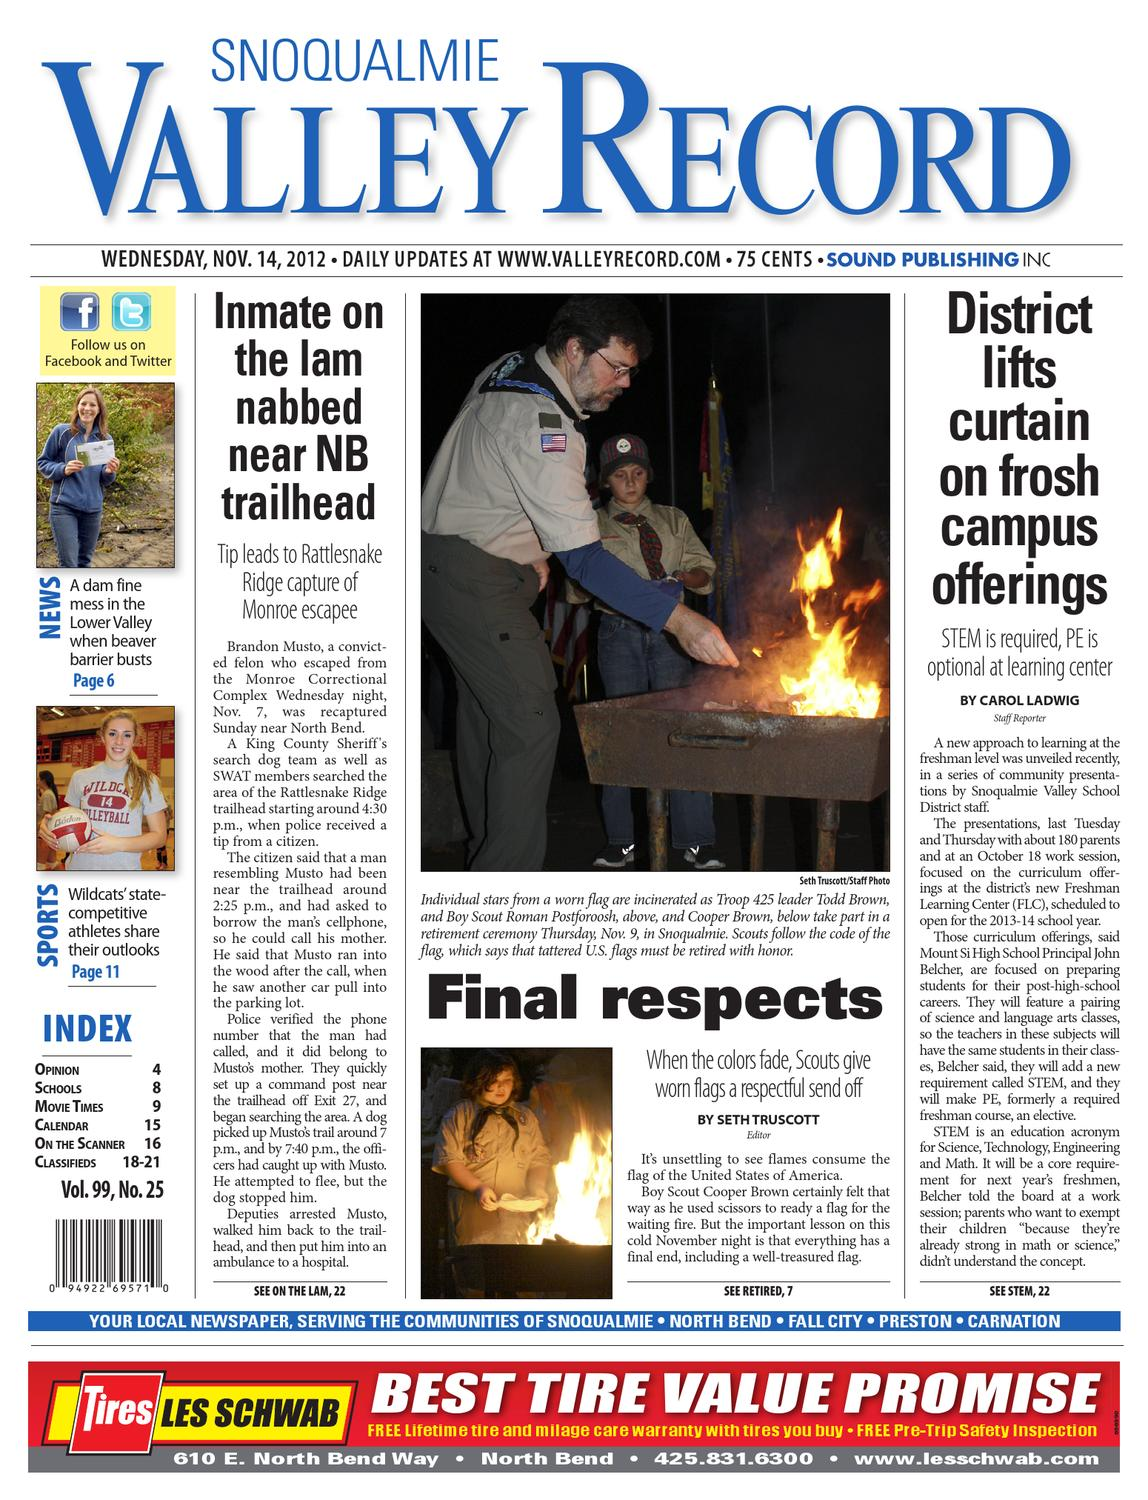 Snoqualmie Valley Record, November 14, 2012